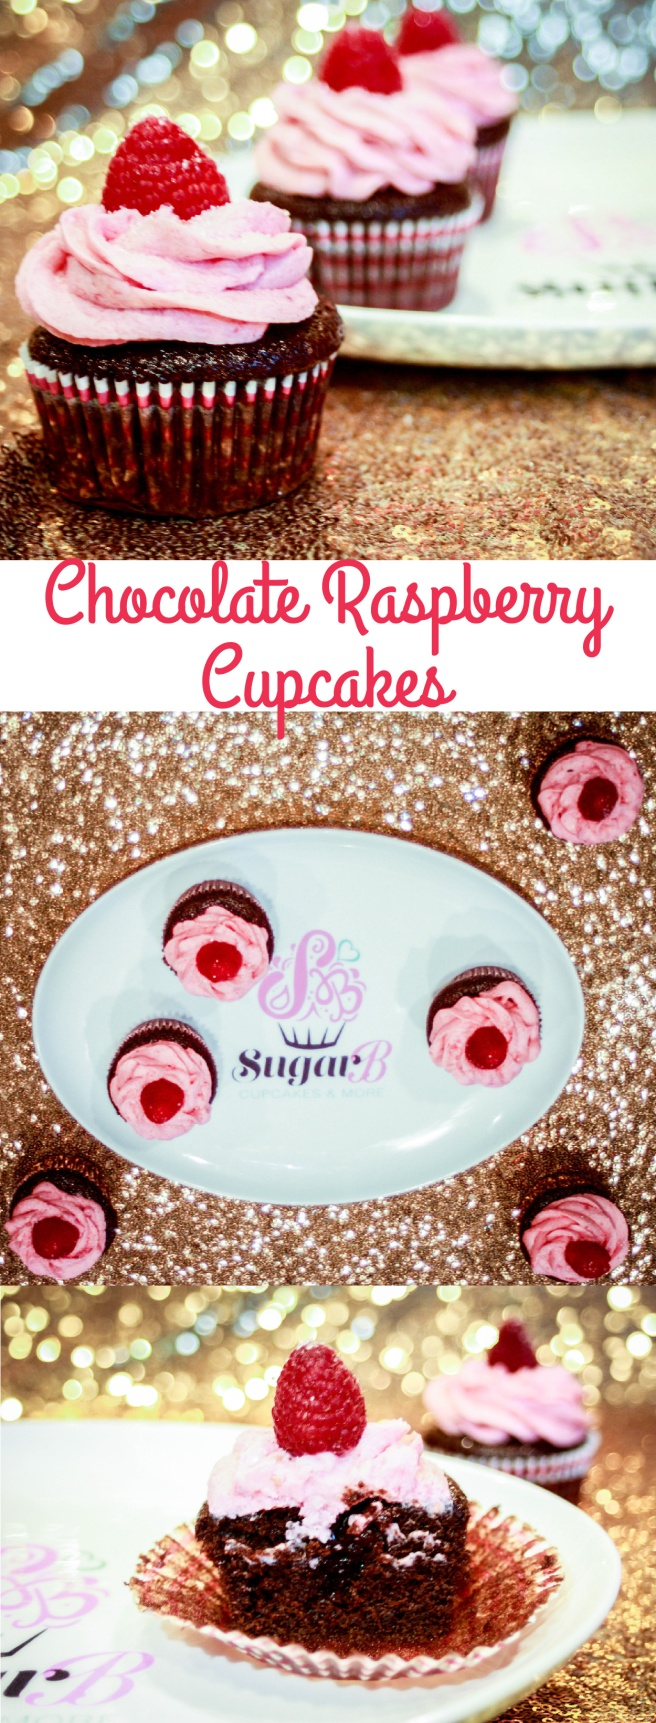 Chocolate Raspberry Cupcakes-1-01